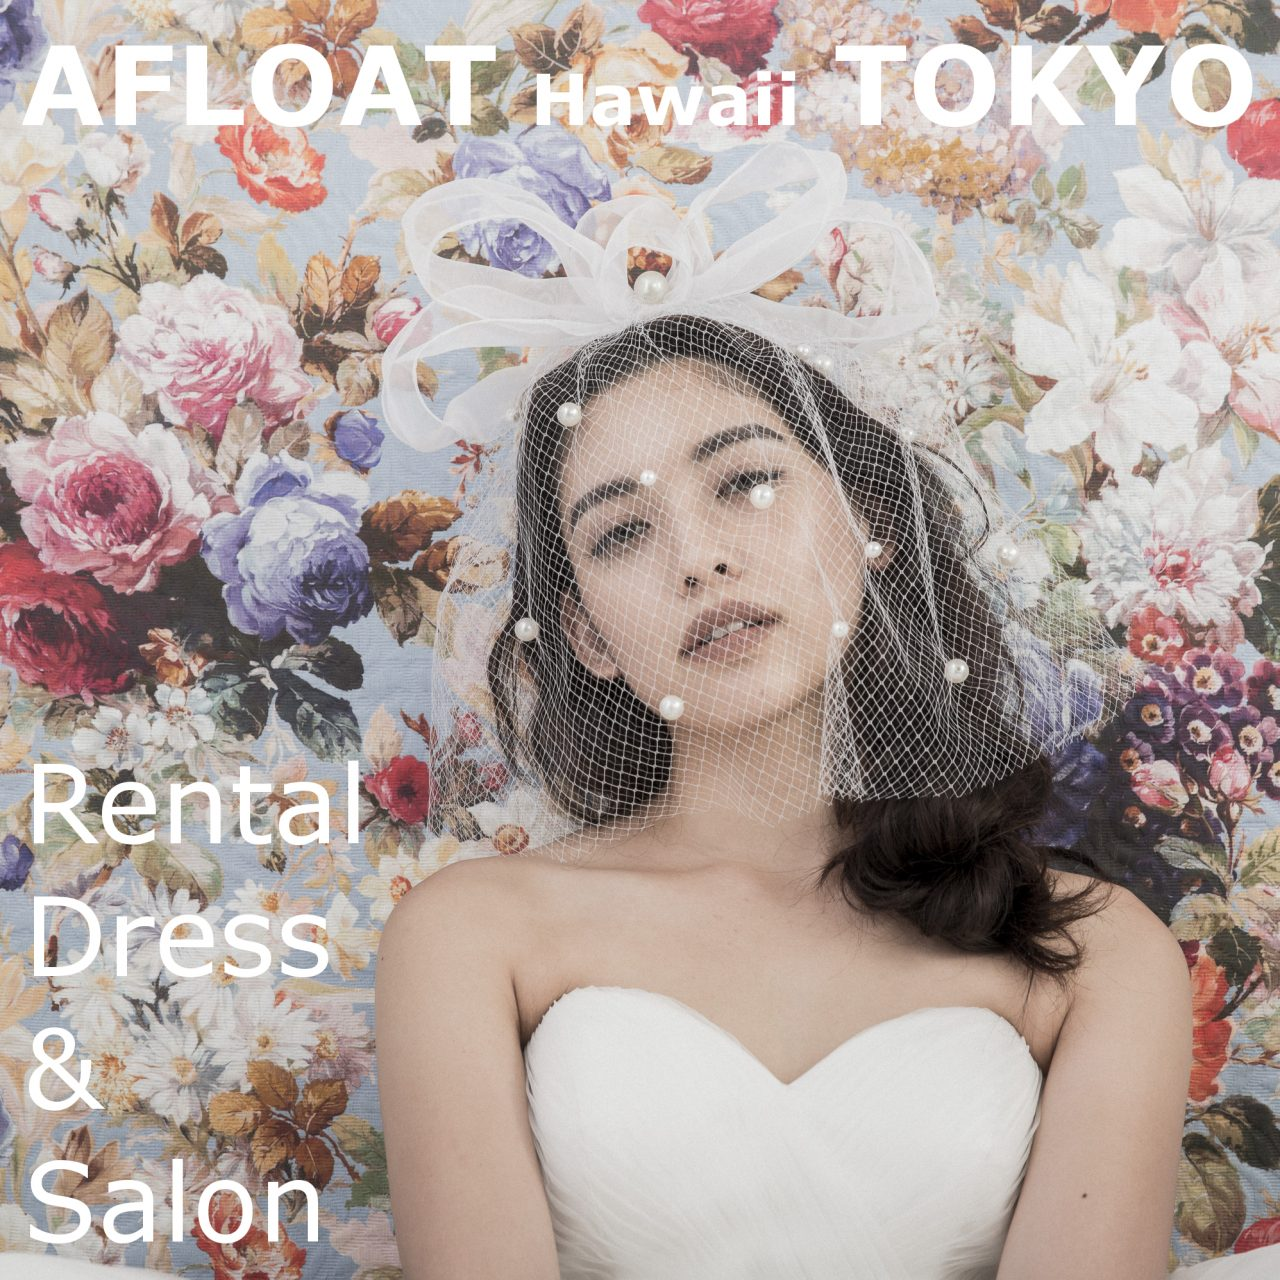 AFLOAT Hawaii TOKYO Rental Dress & Salon